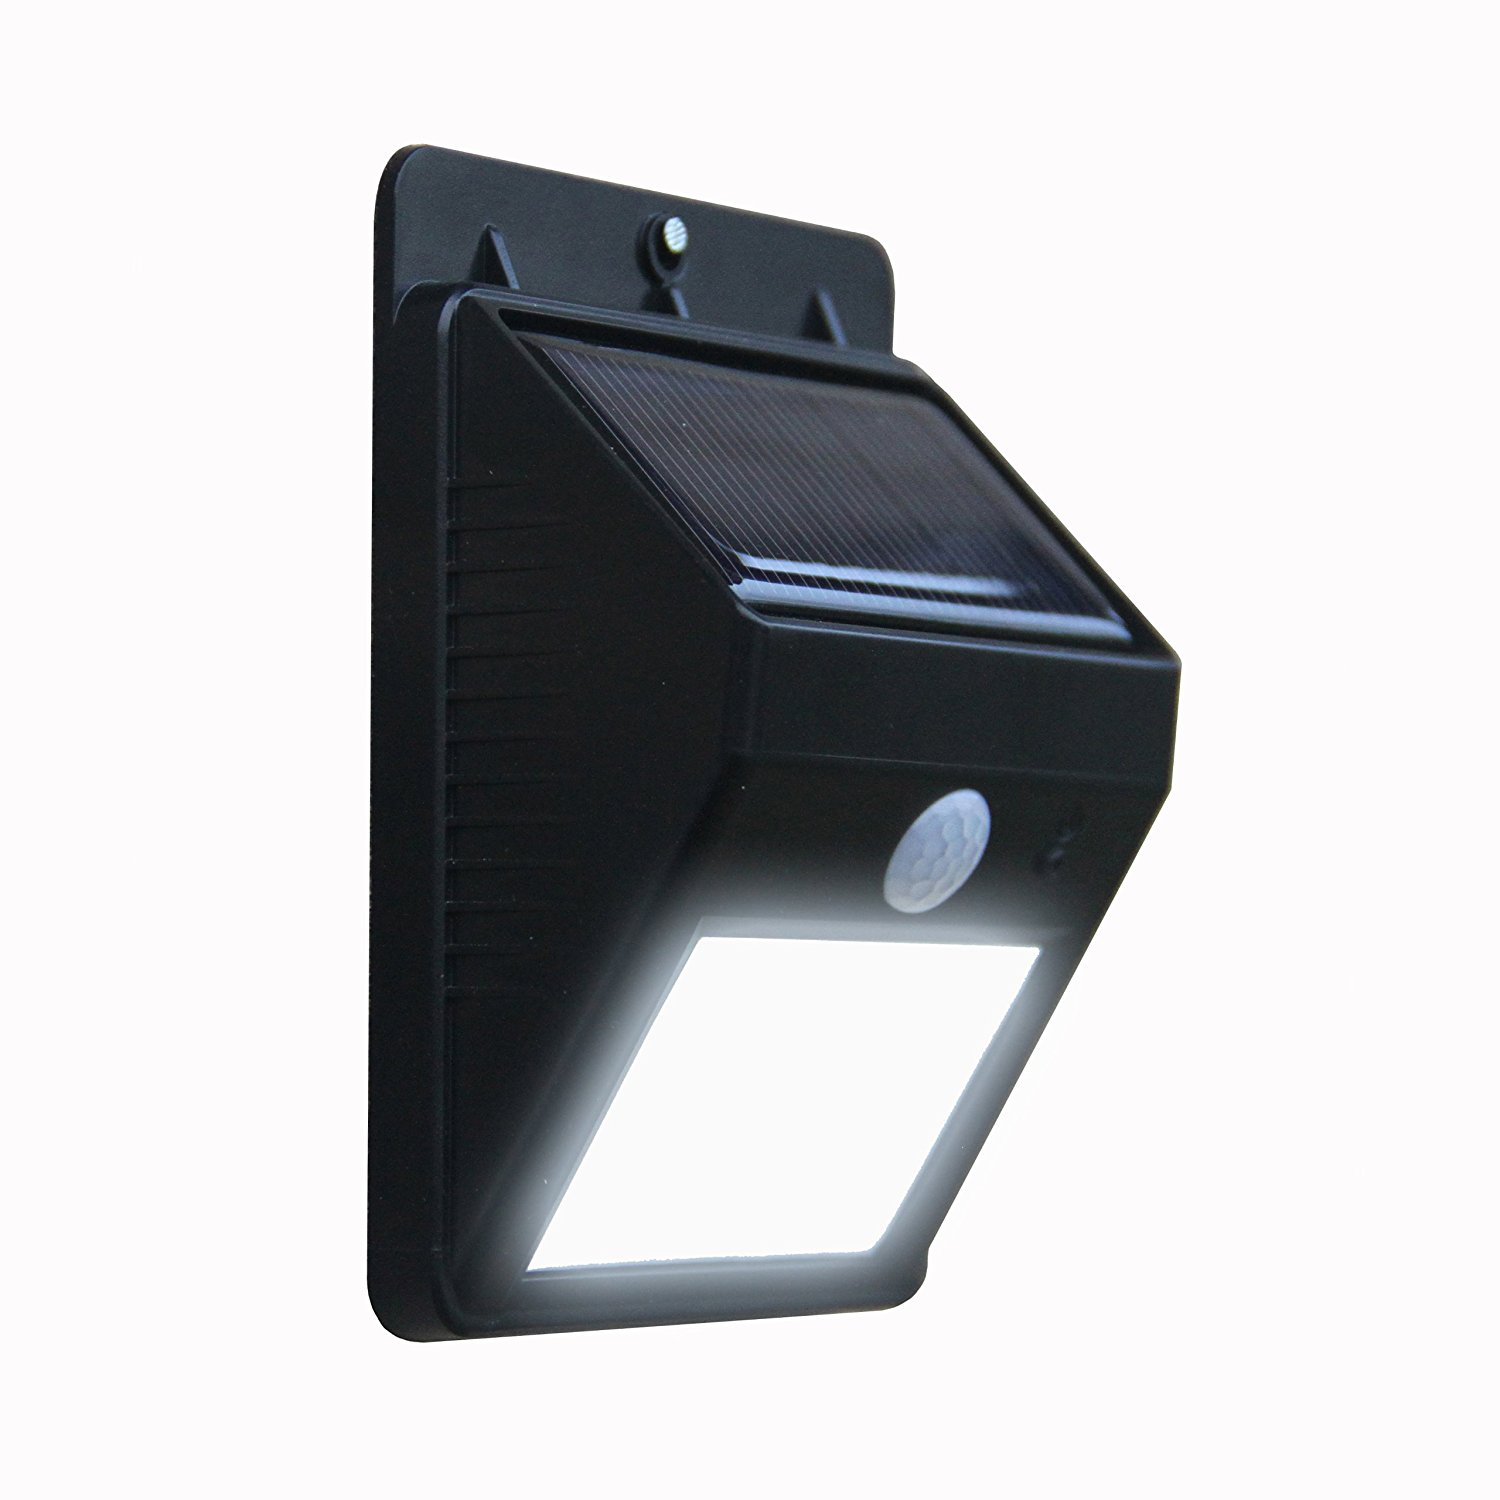 10 benefits of led outdoor sensor light warisan lighting this will turn on the bright security light beam for a certain time allotment that is usually adjustable according to your personal desires mozeypictures Image collections